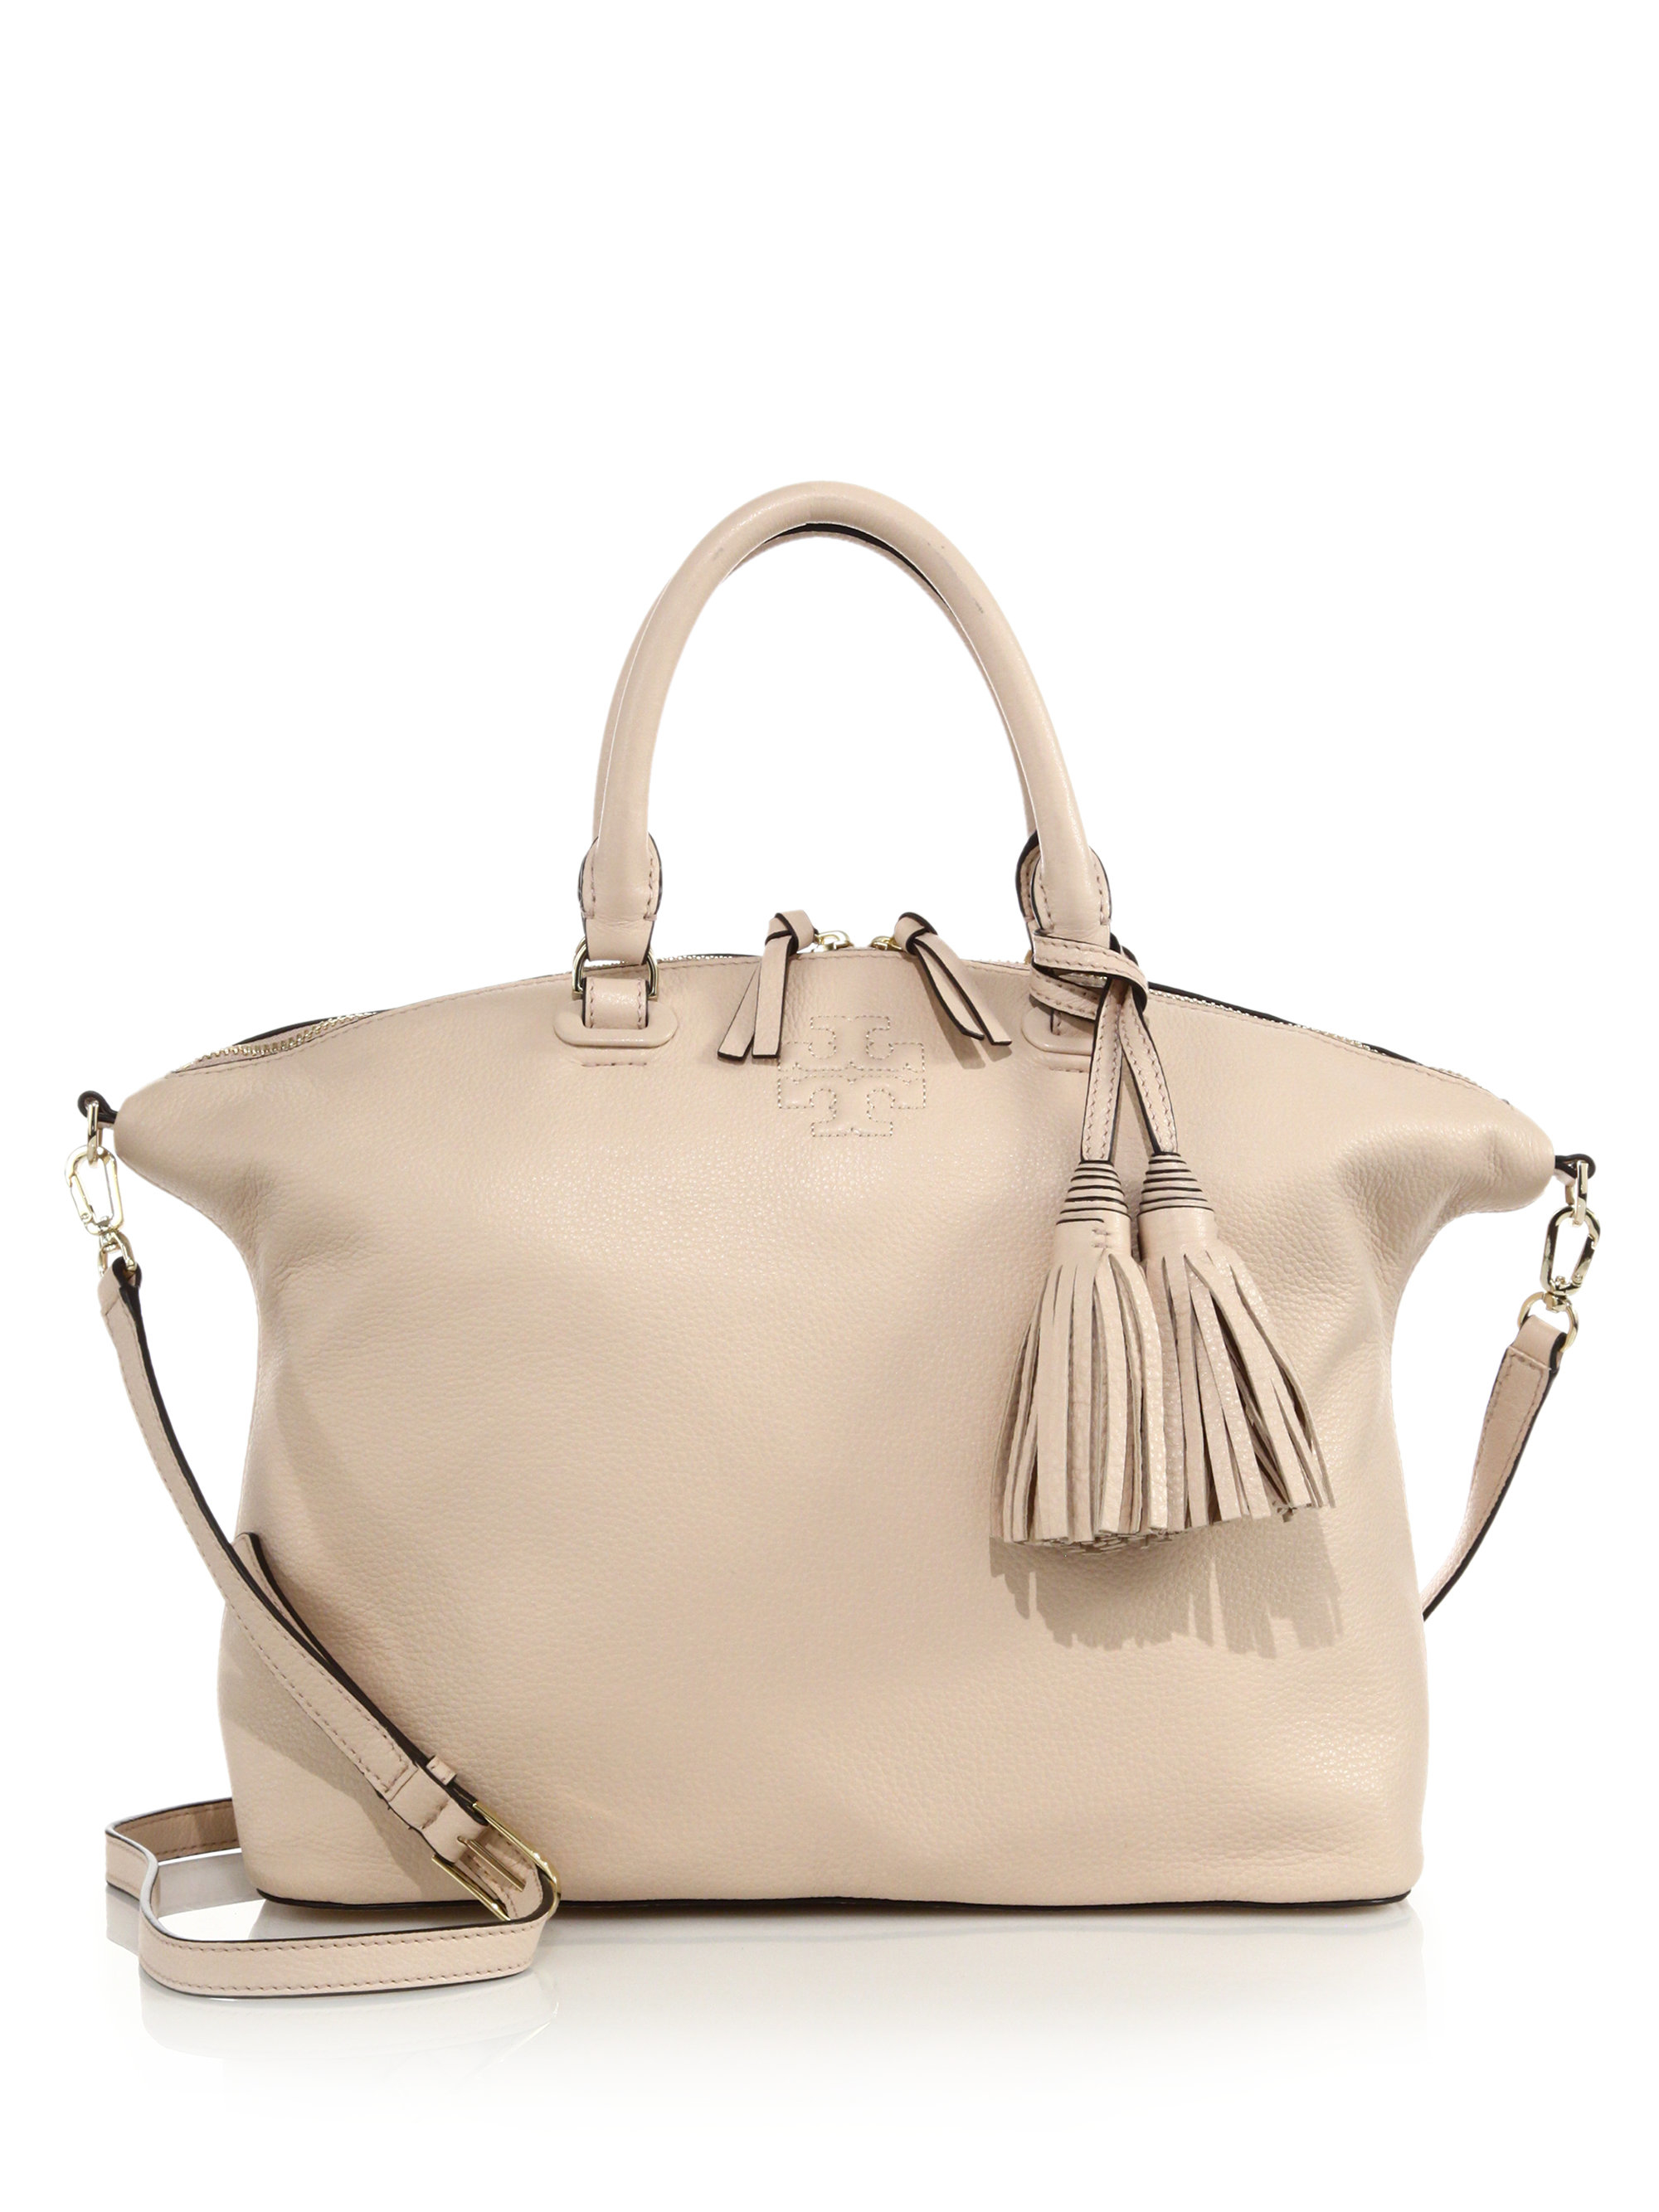 627213a8e108 Lyst - Tory Burch Thea Medium Slouchy Satchel in Natural